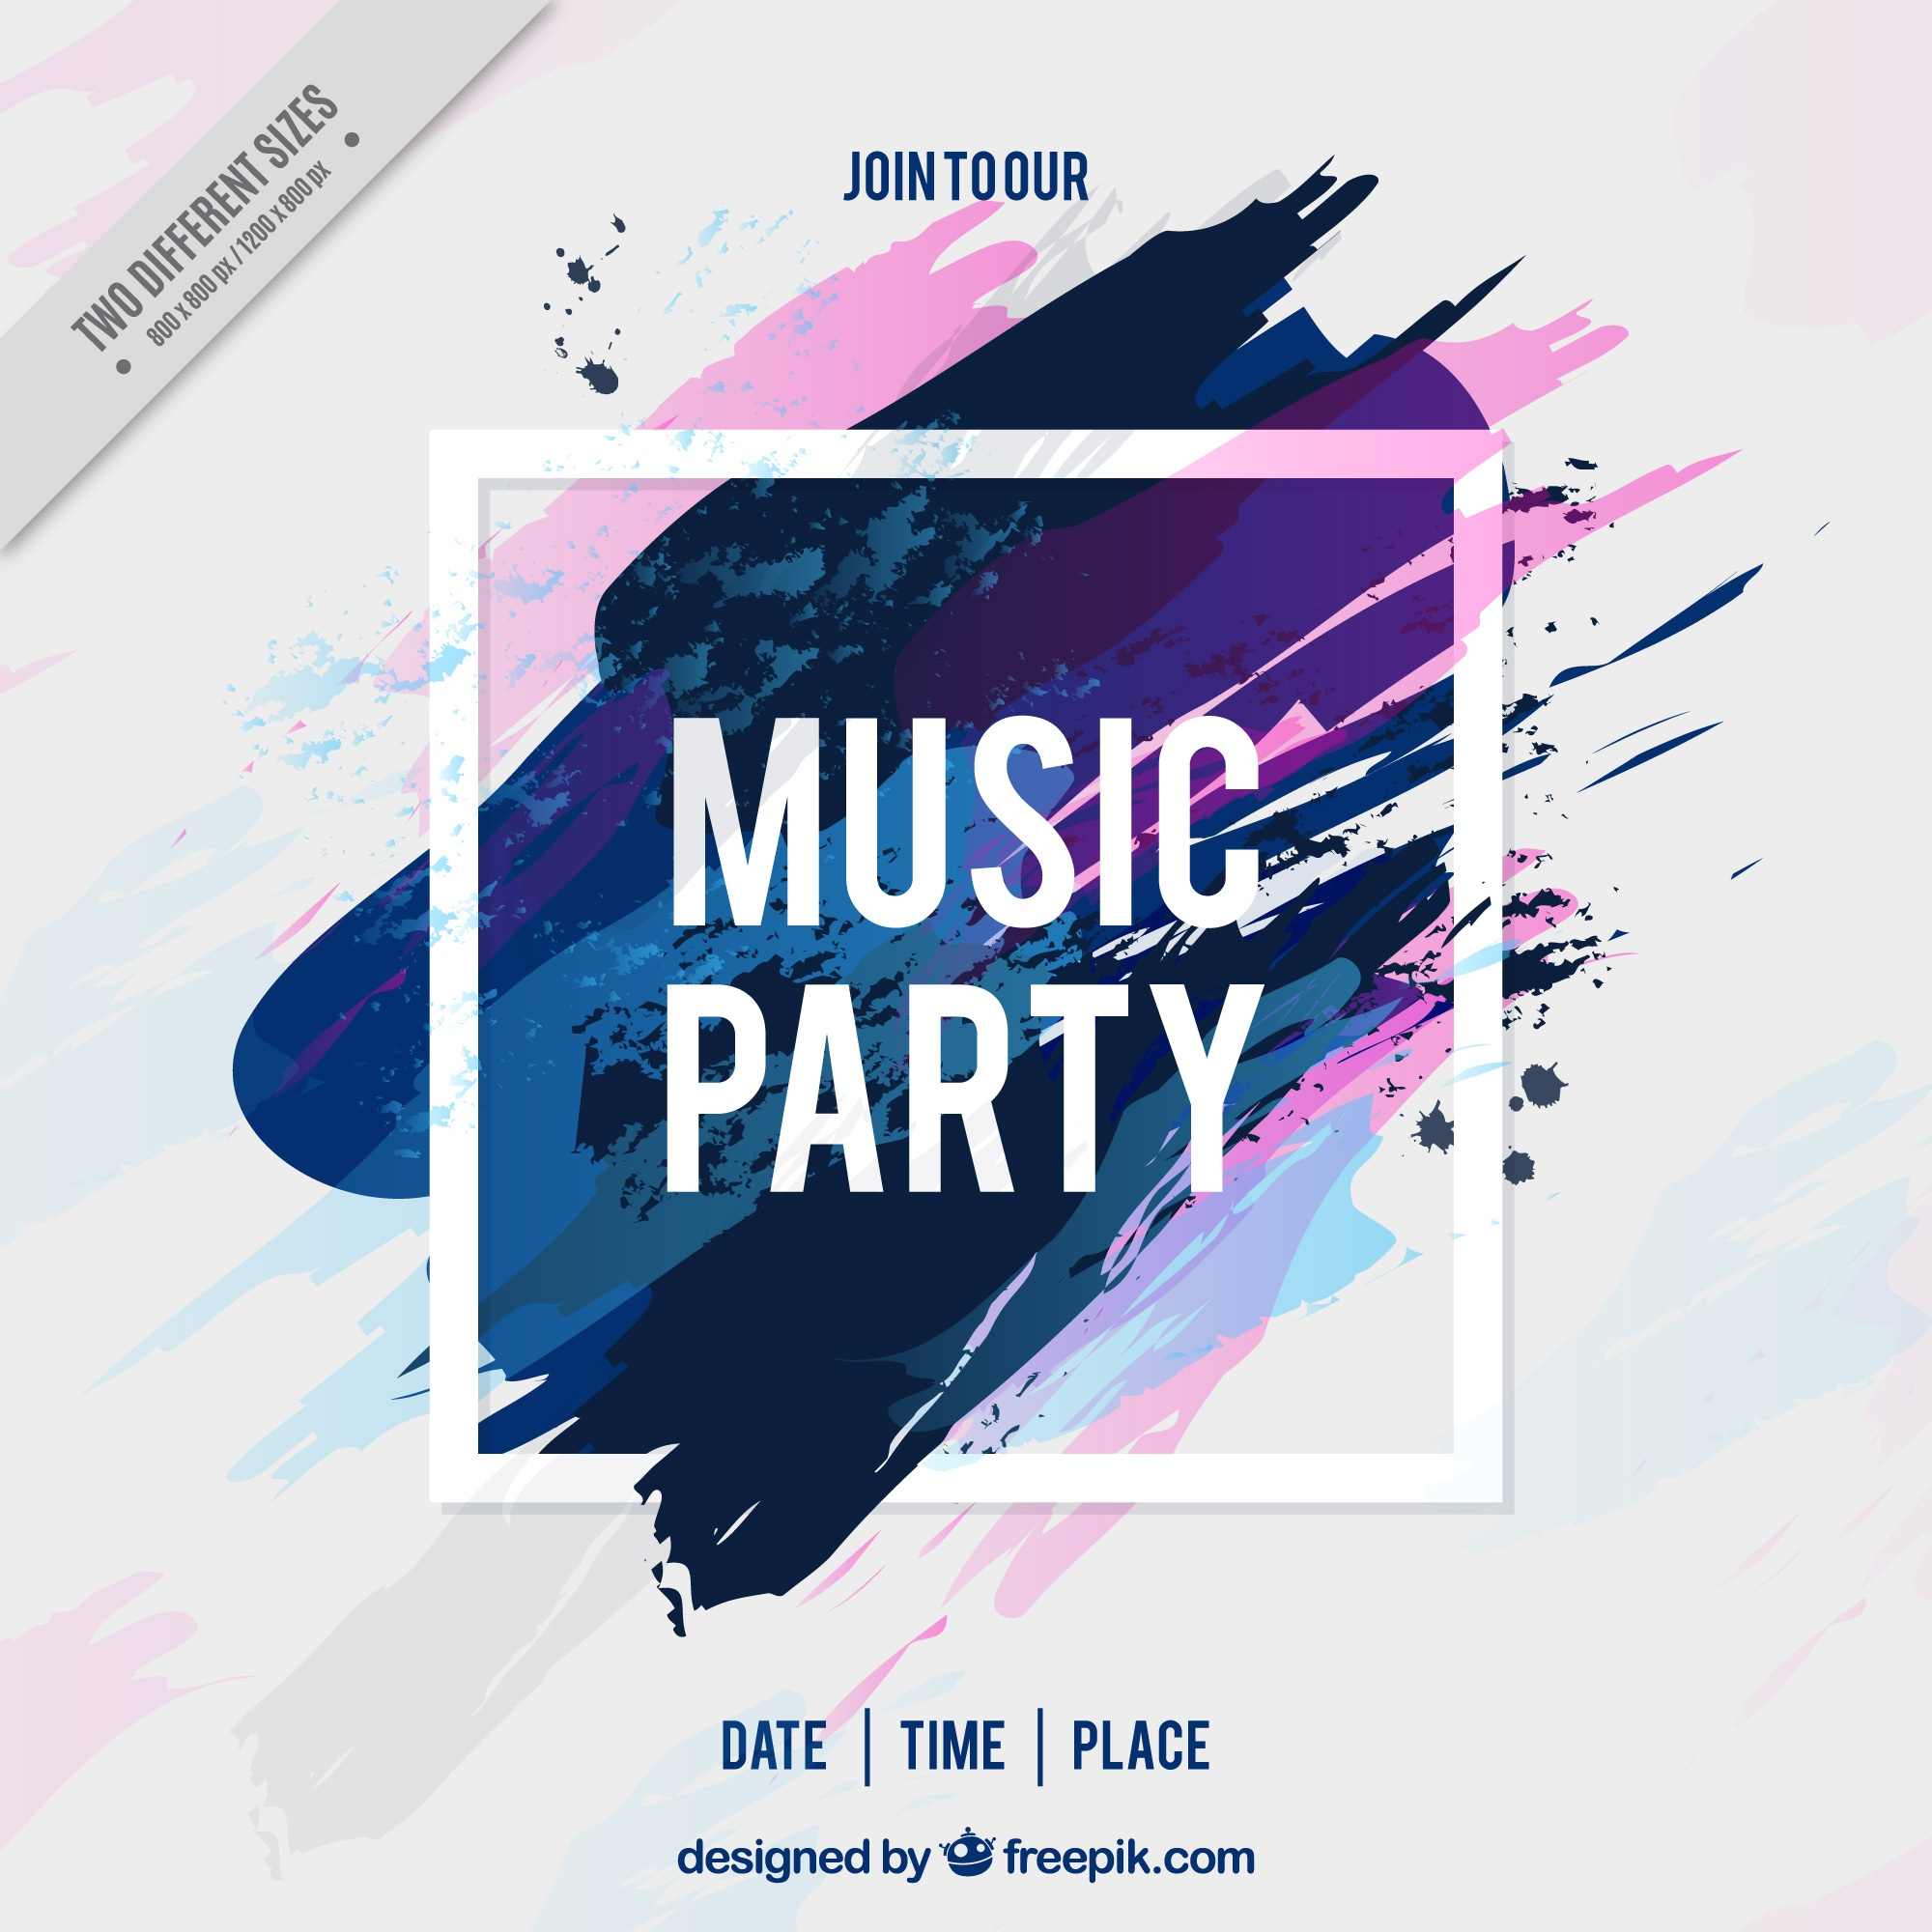 Background of music party brushstrokes